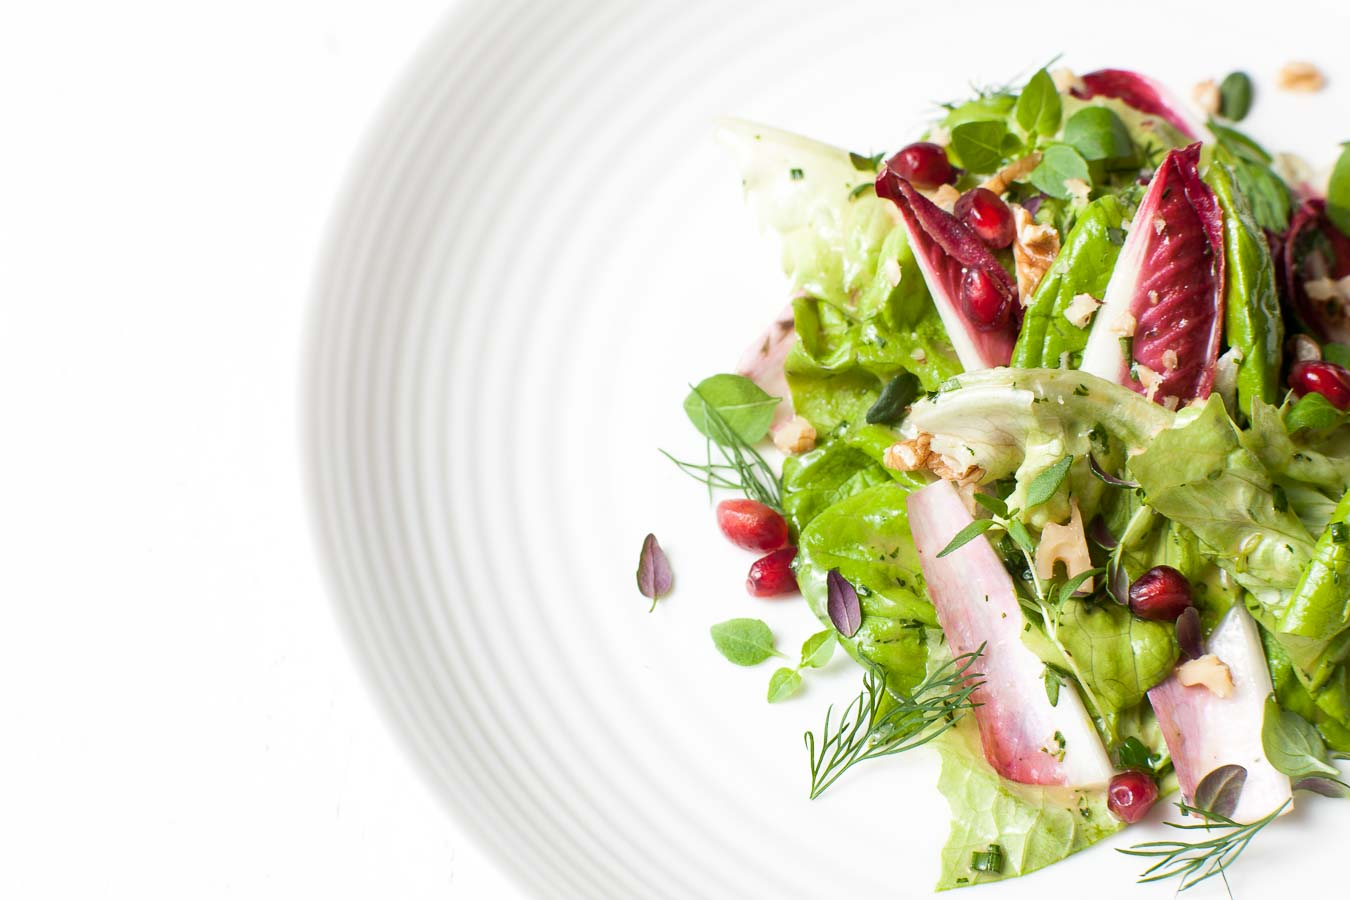 A salad with crisp lettuce, endive, herbs and pomegranate seeds, on a white plate